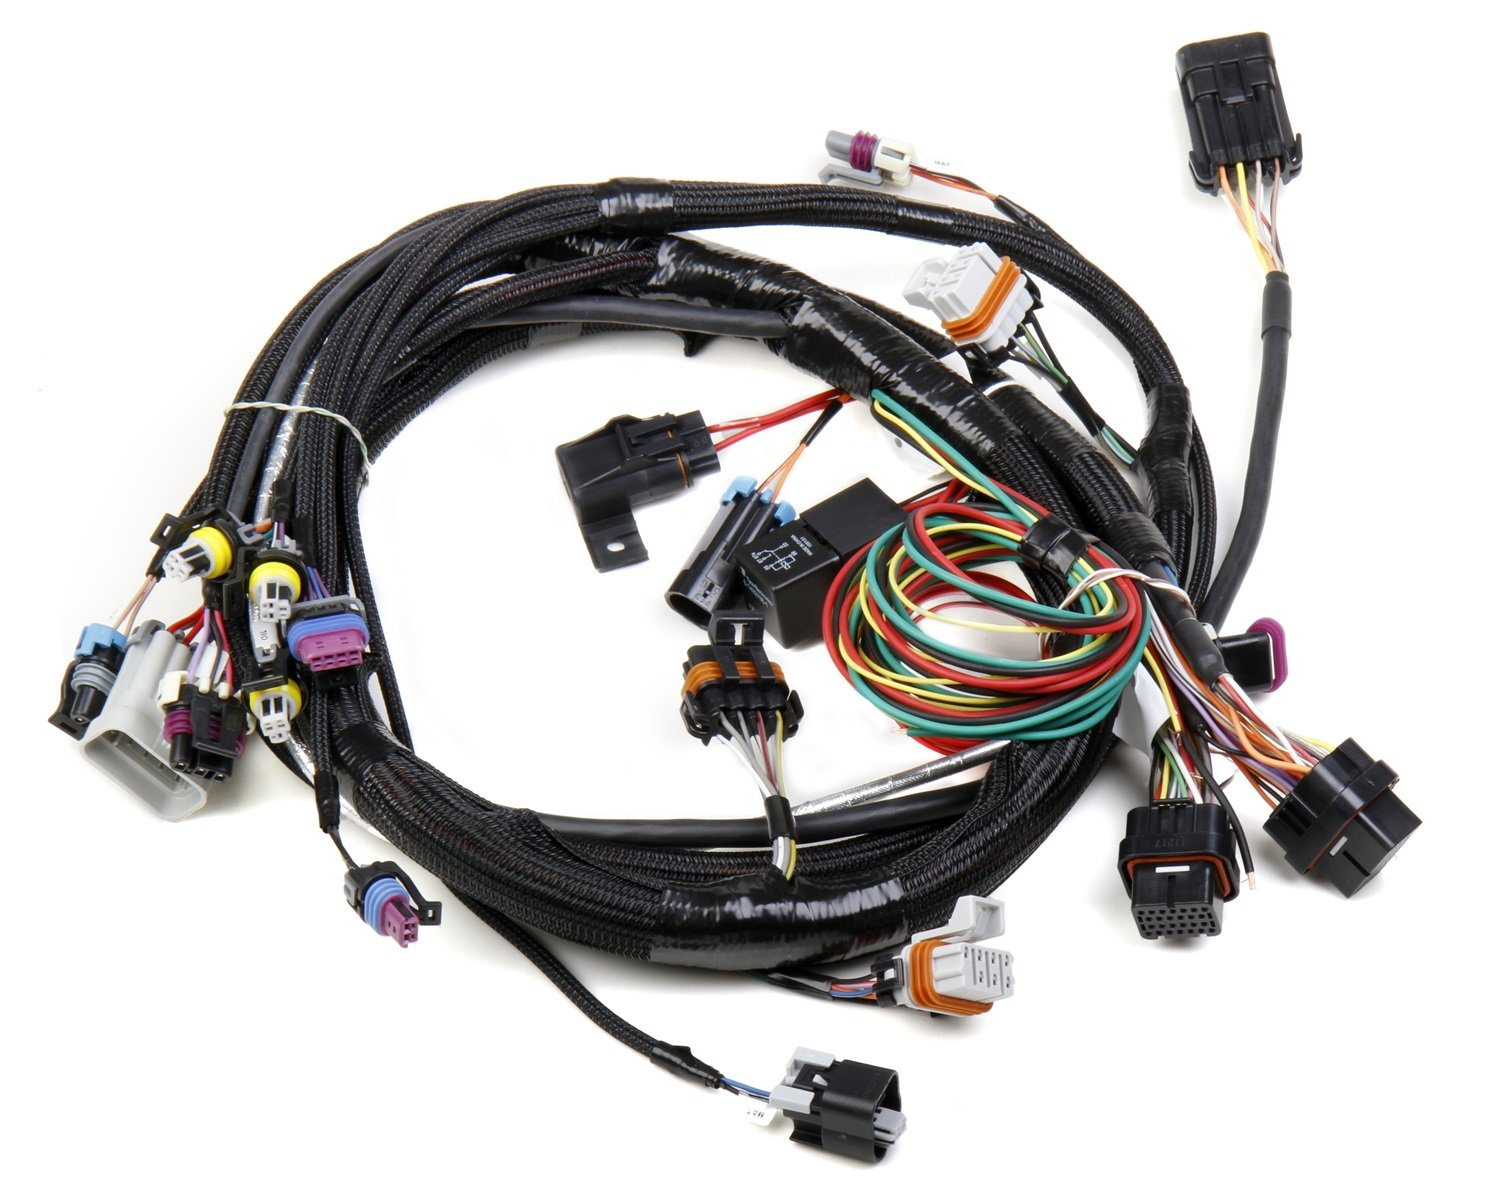 71R9M48Oc L._SL1500_ amazon com holley 558 102 ls1 main harness automotive 6.5 Diesel Wiring Harness at gsmx.co